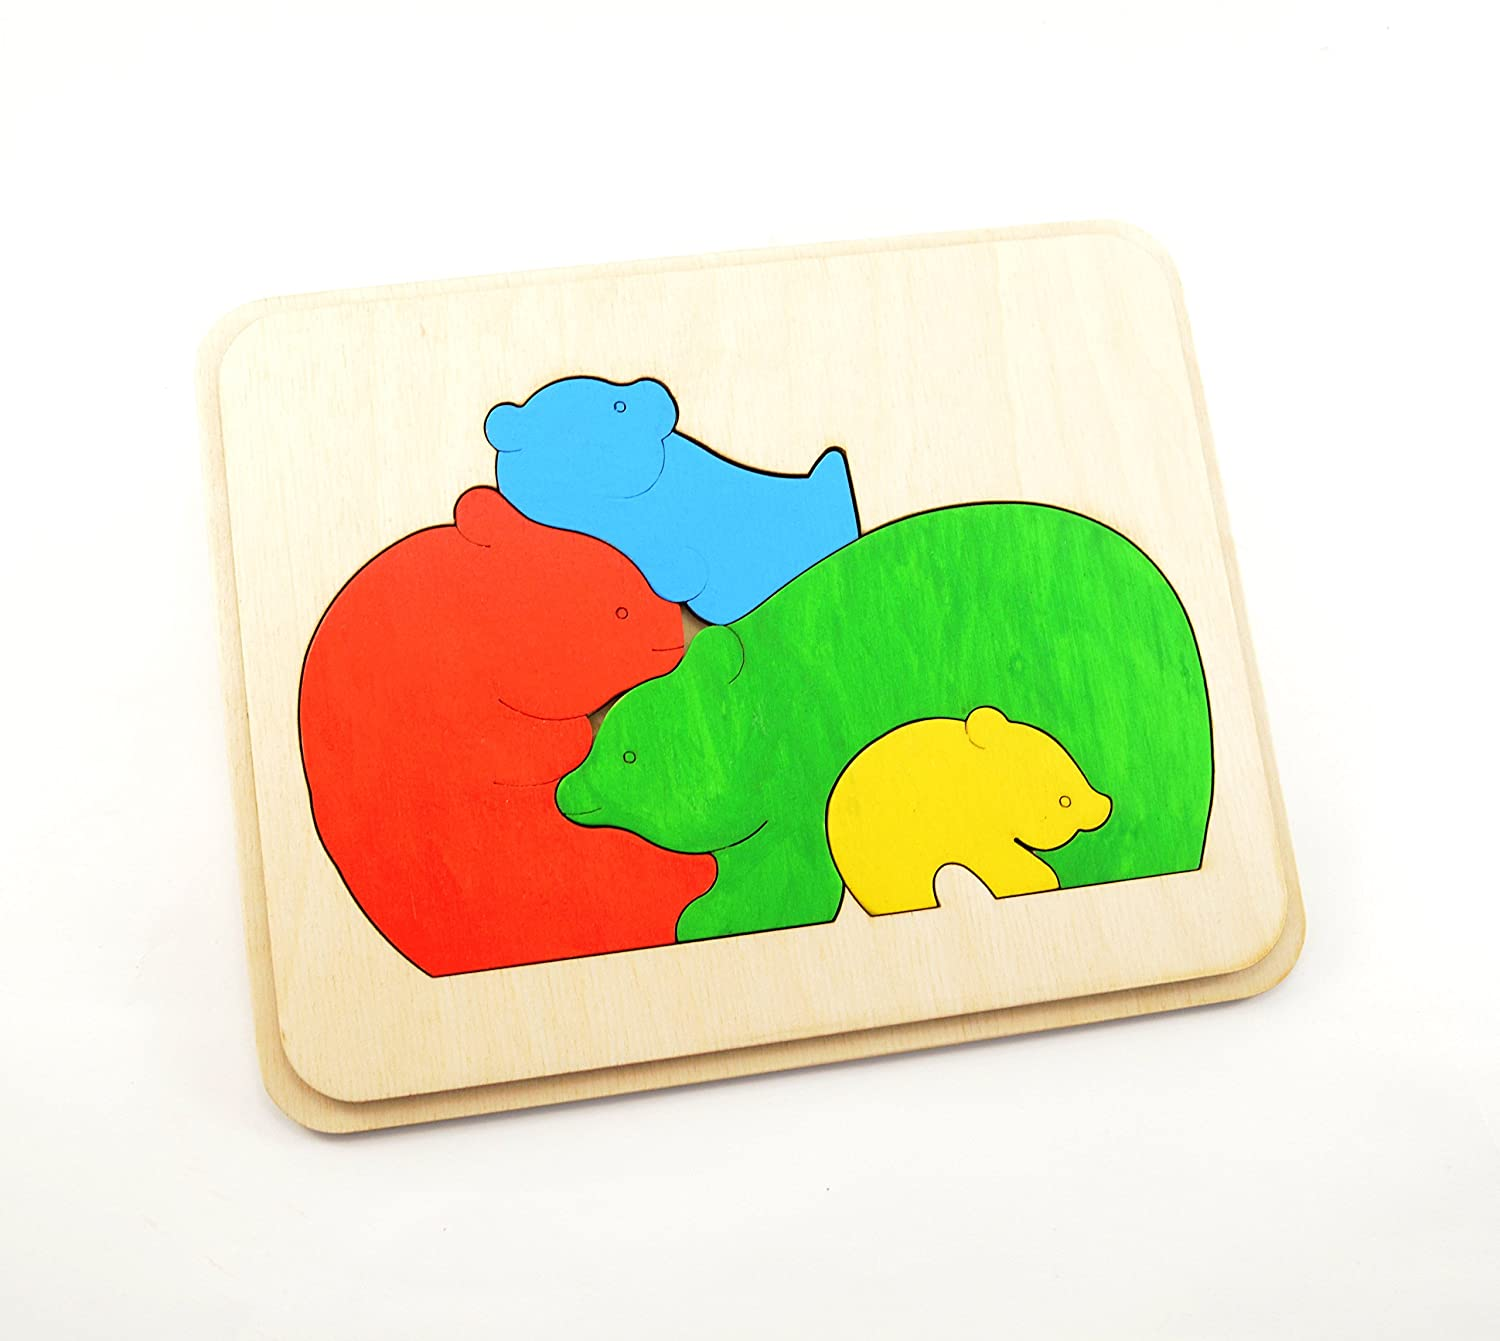 Bears family Wooden puzzle Waldorf toy Wooden toy Sensory toy Handmade Wood July 4th Toddler toy Baby toys Fine motor skills Montessori toy